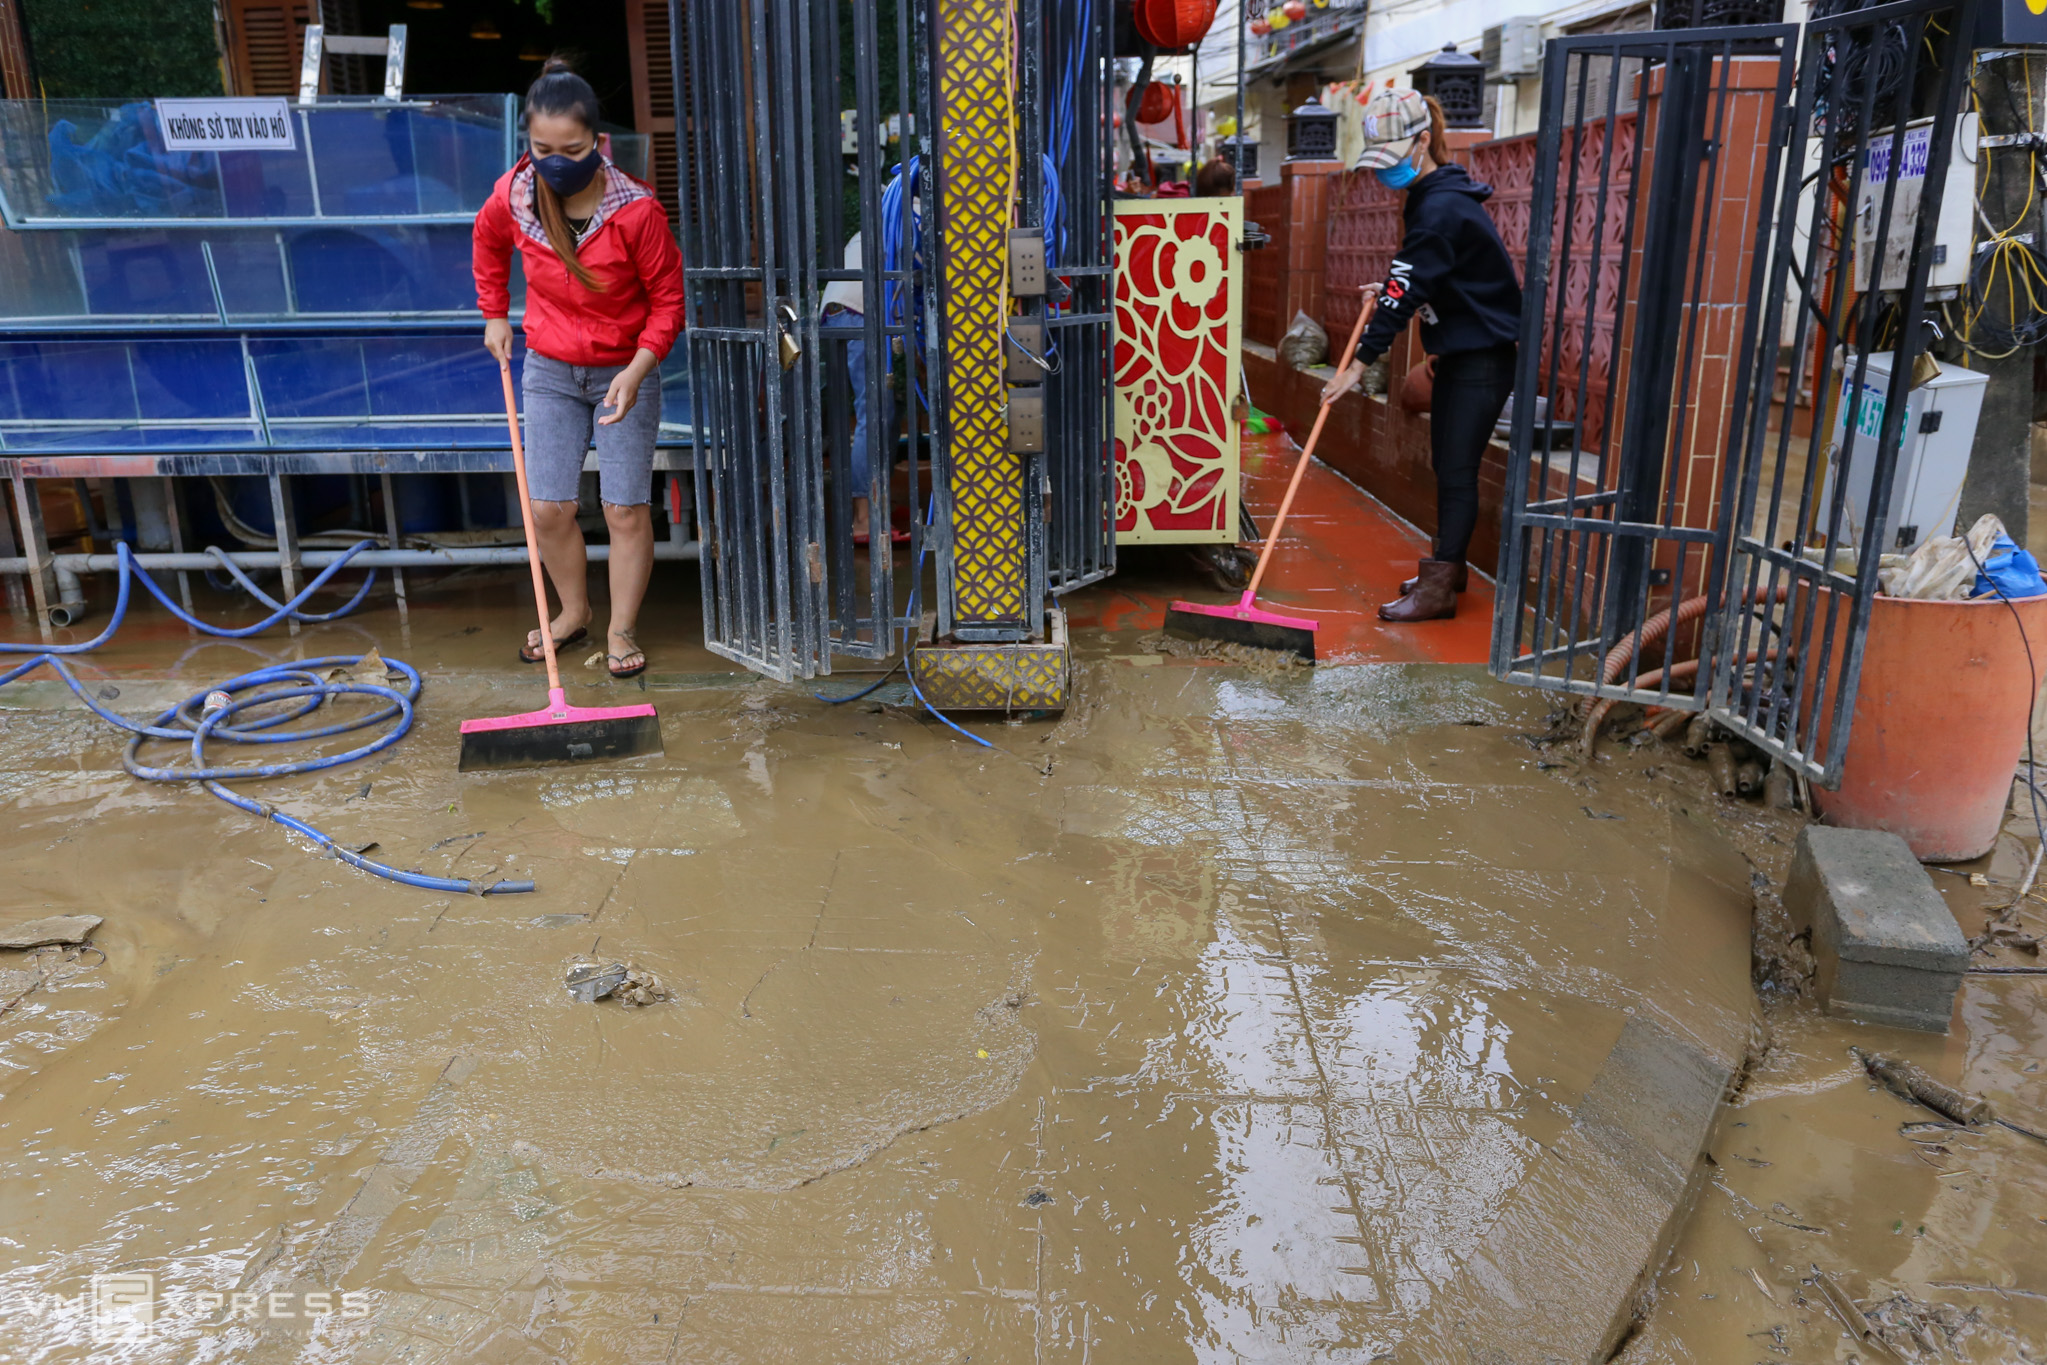 Residents clean up Hoi An ahead of heritage status anniversary